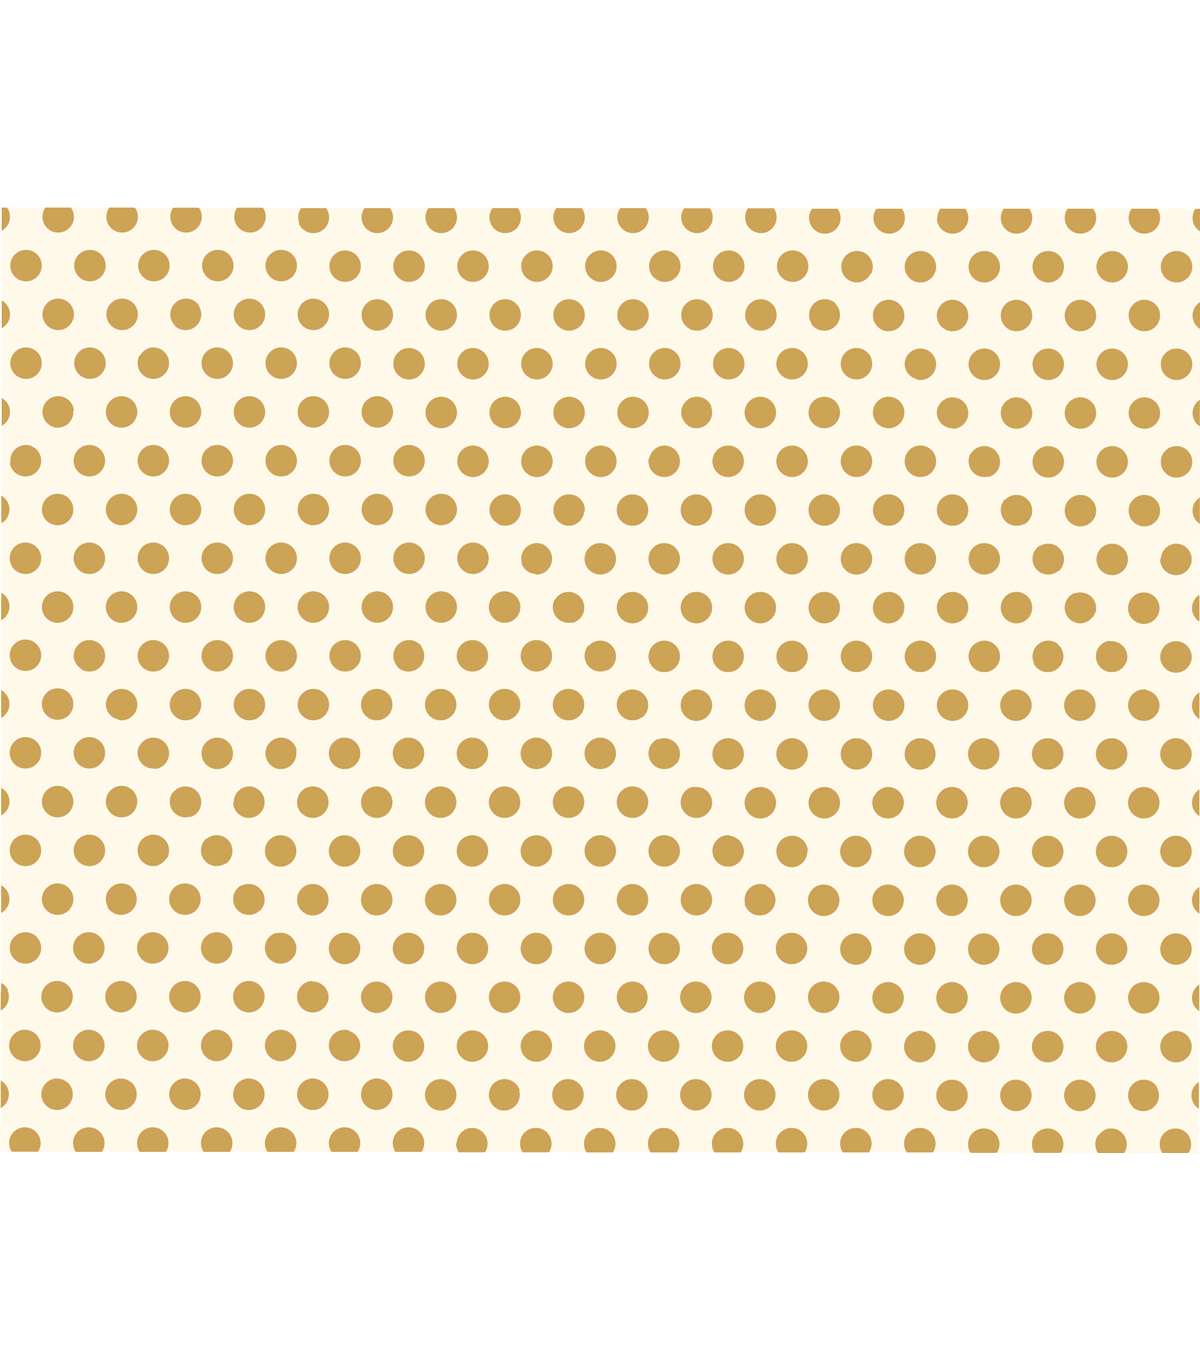 American Crafts We R Memory Keepers 22\u0027\u0027x28\u0027\u0027 Poster Board-Gold Dots